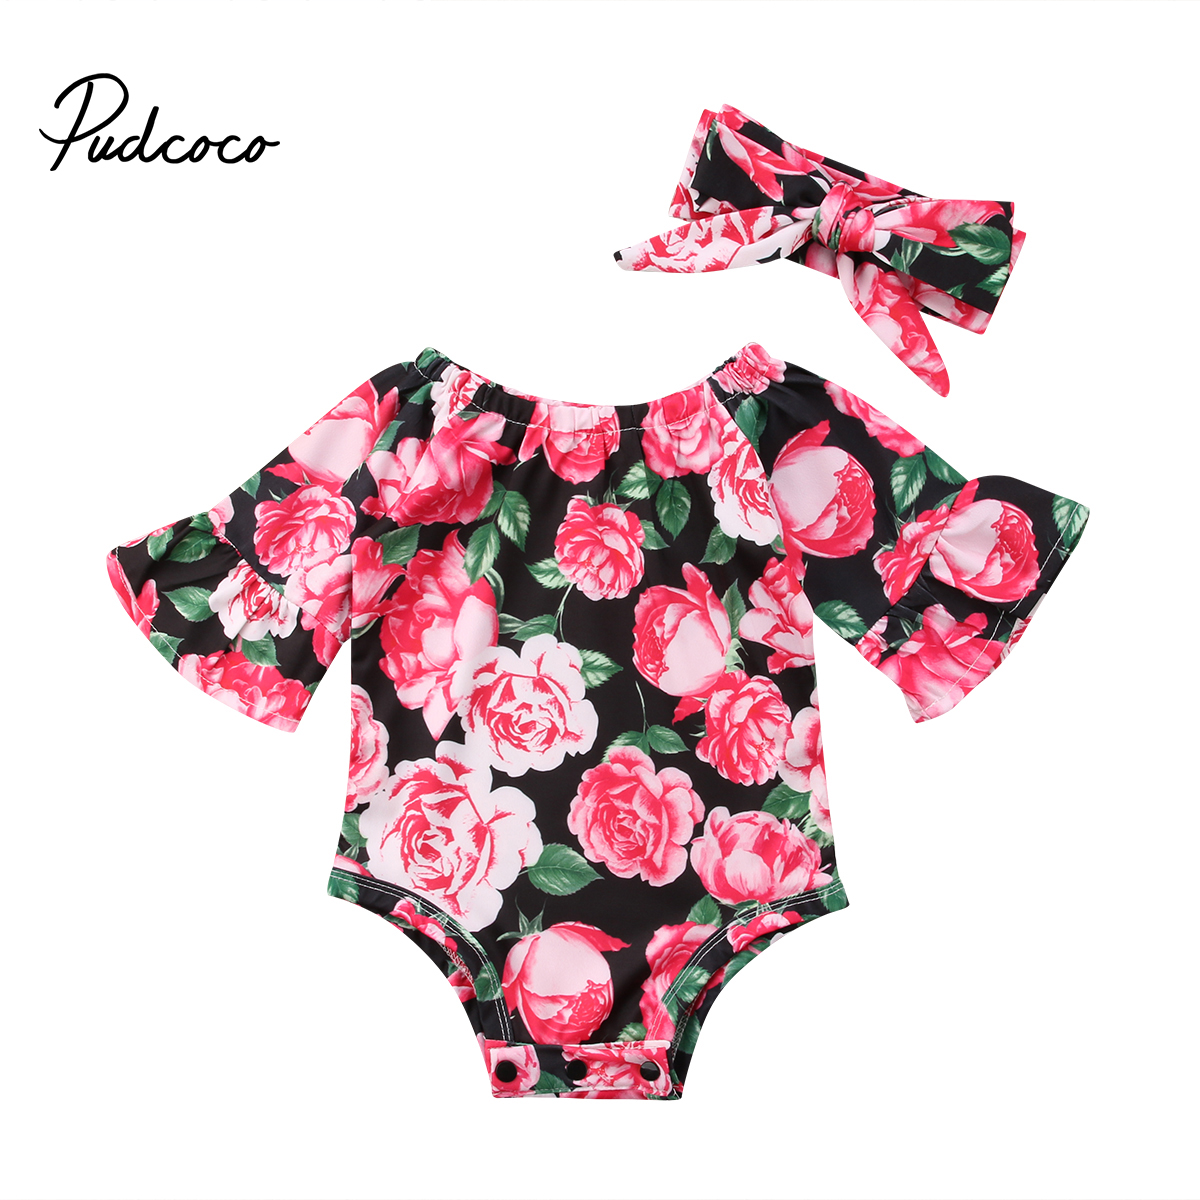 Newborn Baby Infant Girl Floral Romper Jumpsuit Bodysuit Headband Outfit Clothes